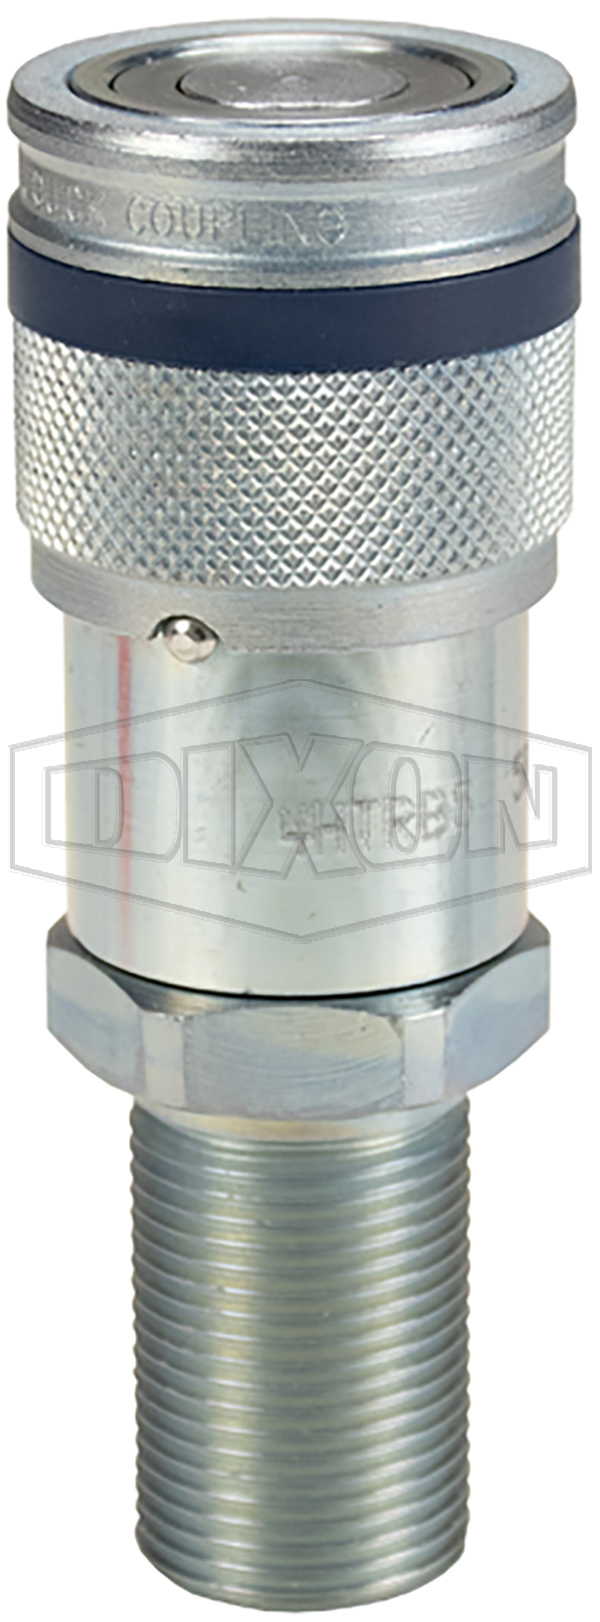 DQC HT-Series Correct Connect™ Flushface Male Threaded Bulkhead Coupler